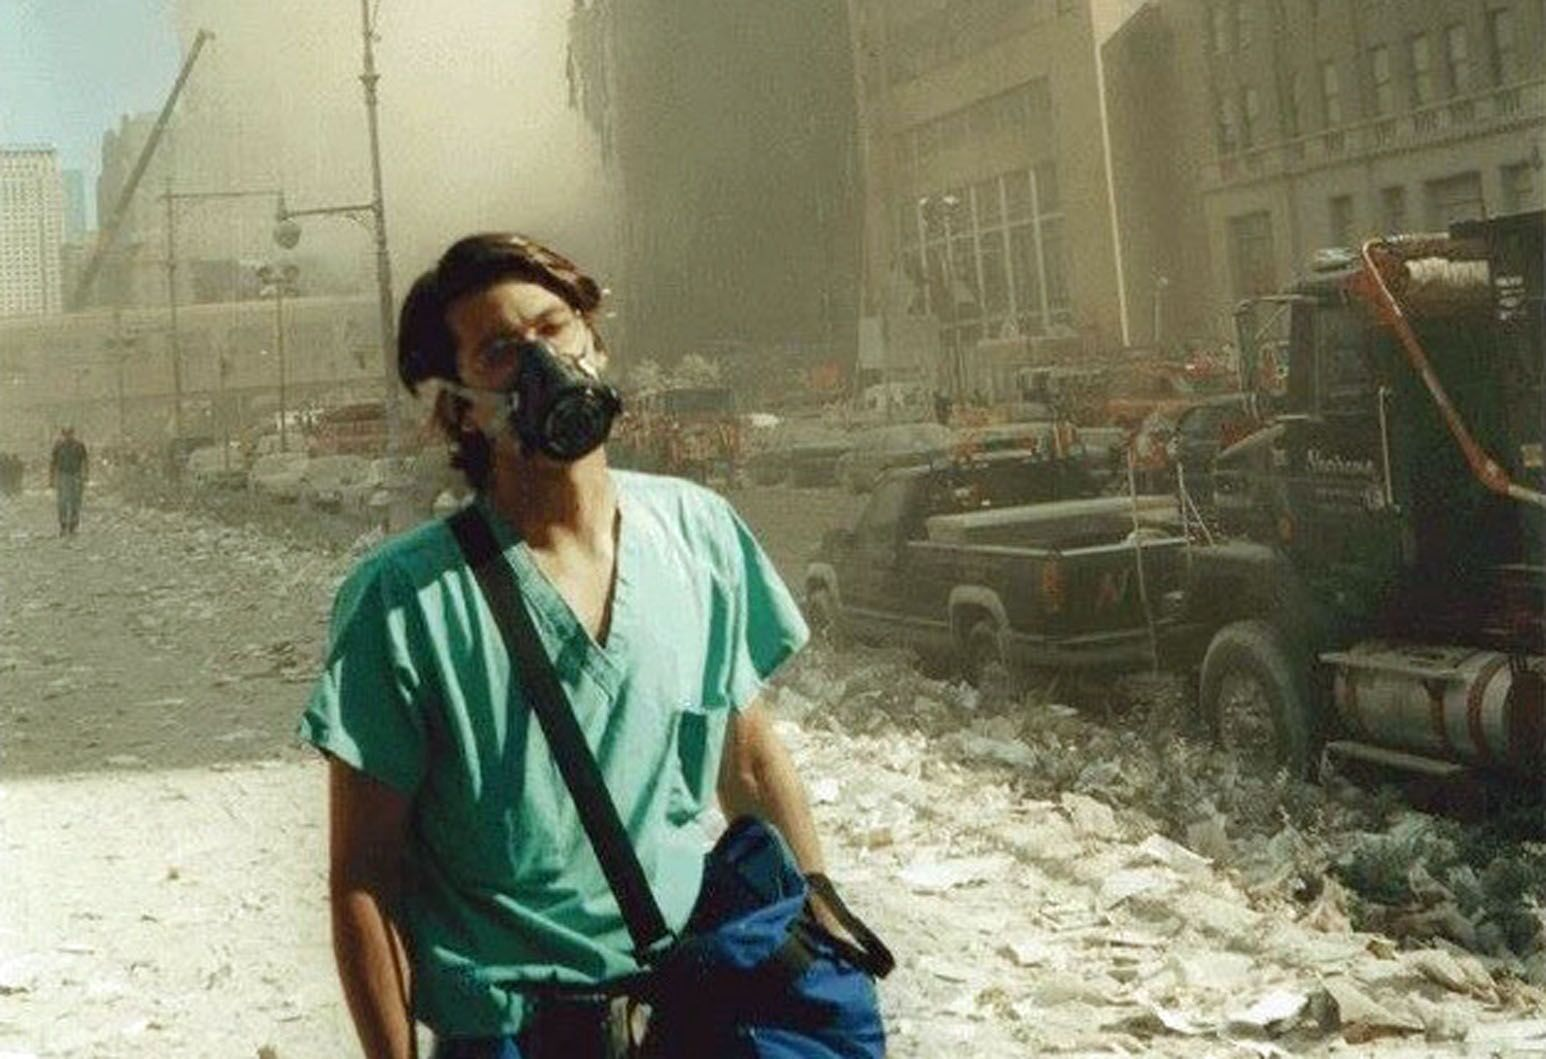 Omar Bholat wears a mask while working in lower Manhattan on September 11, 2001. He provided medical assistance at Chelsea Pier and the Green Zone Triage at South Ferry.